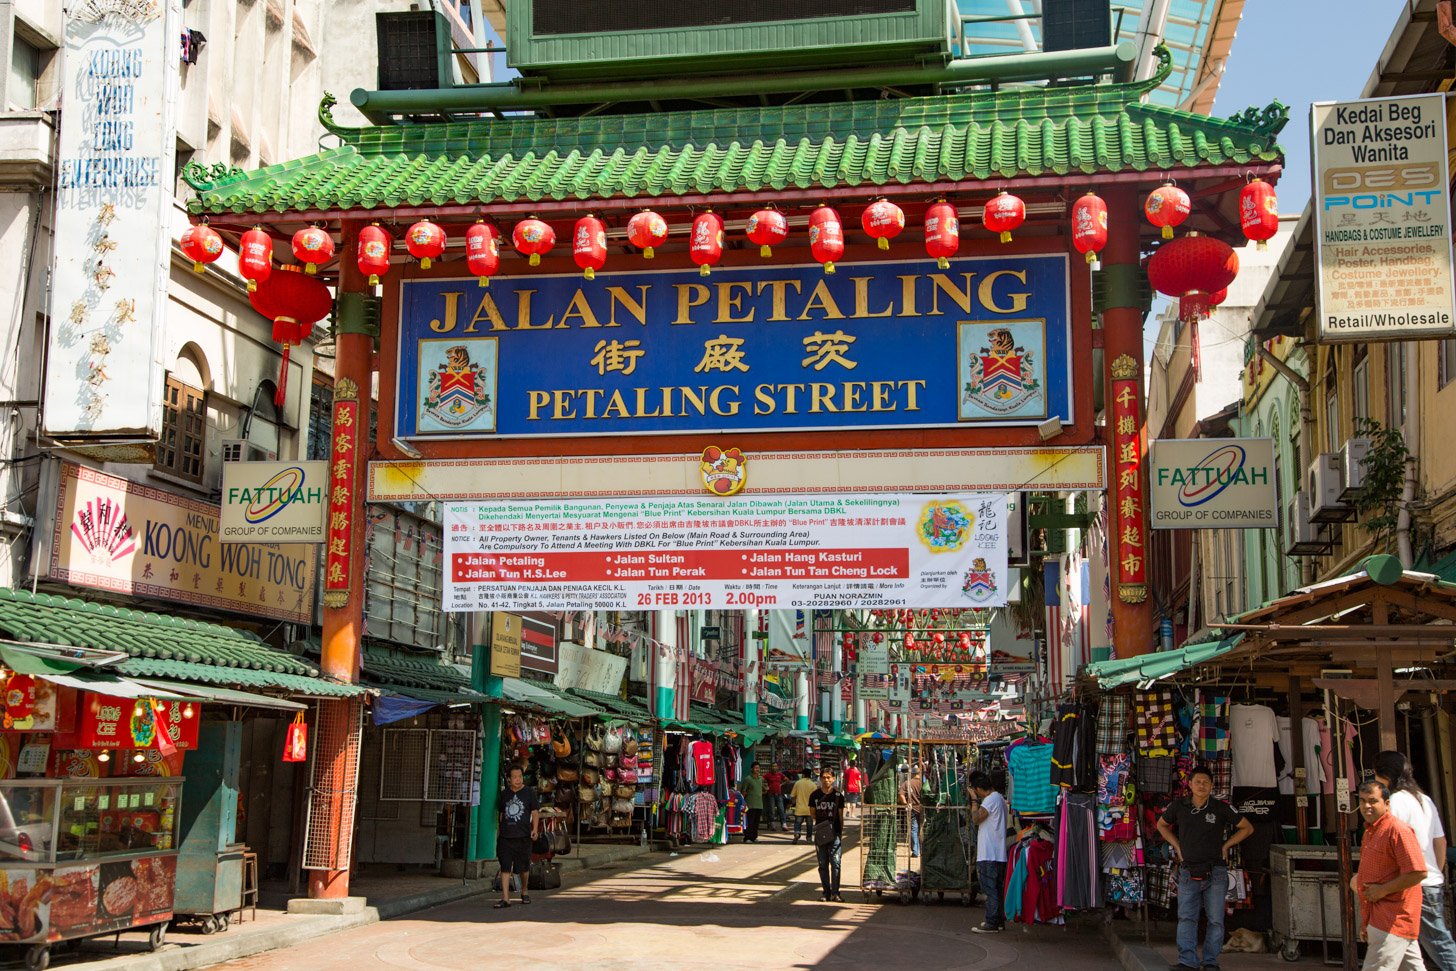 Petaling Street in Chinatown